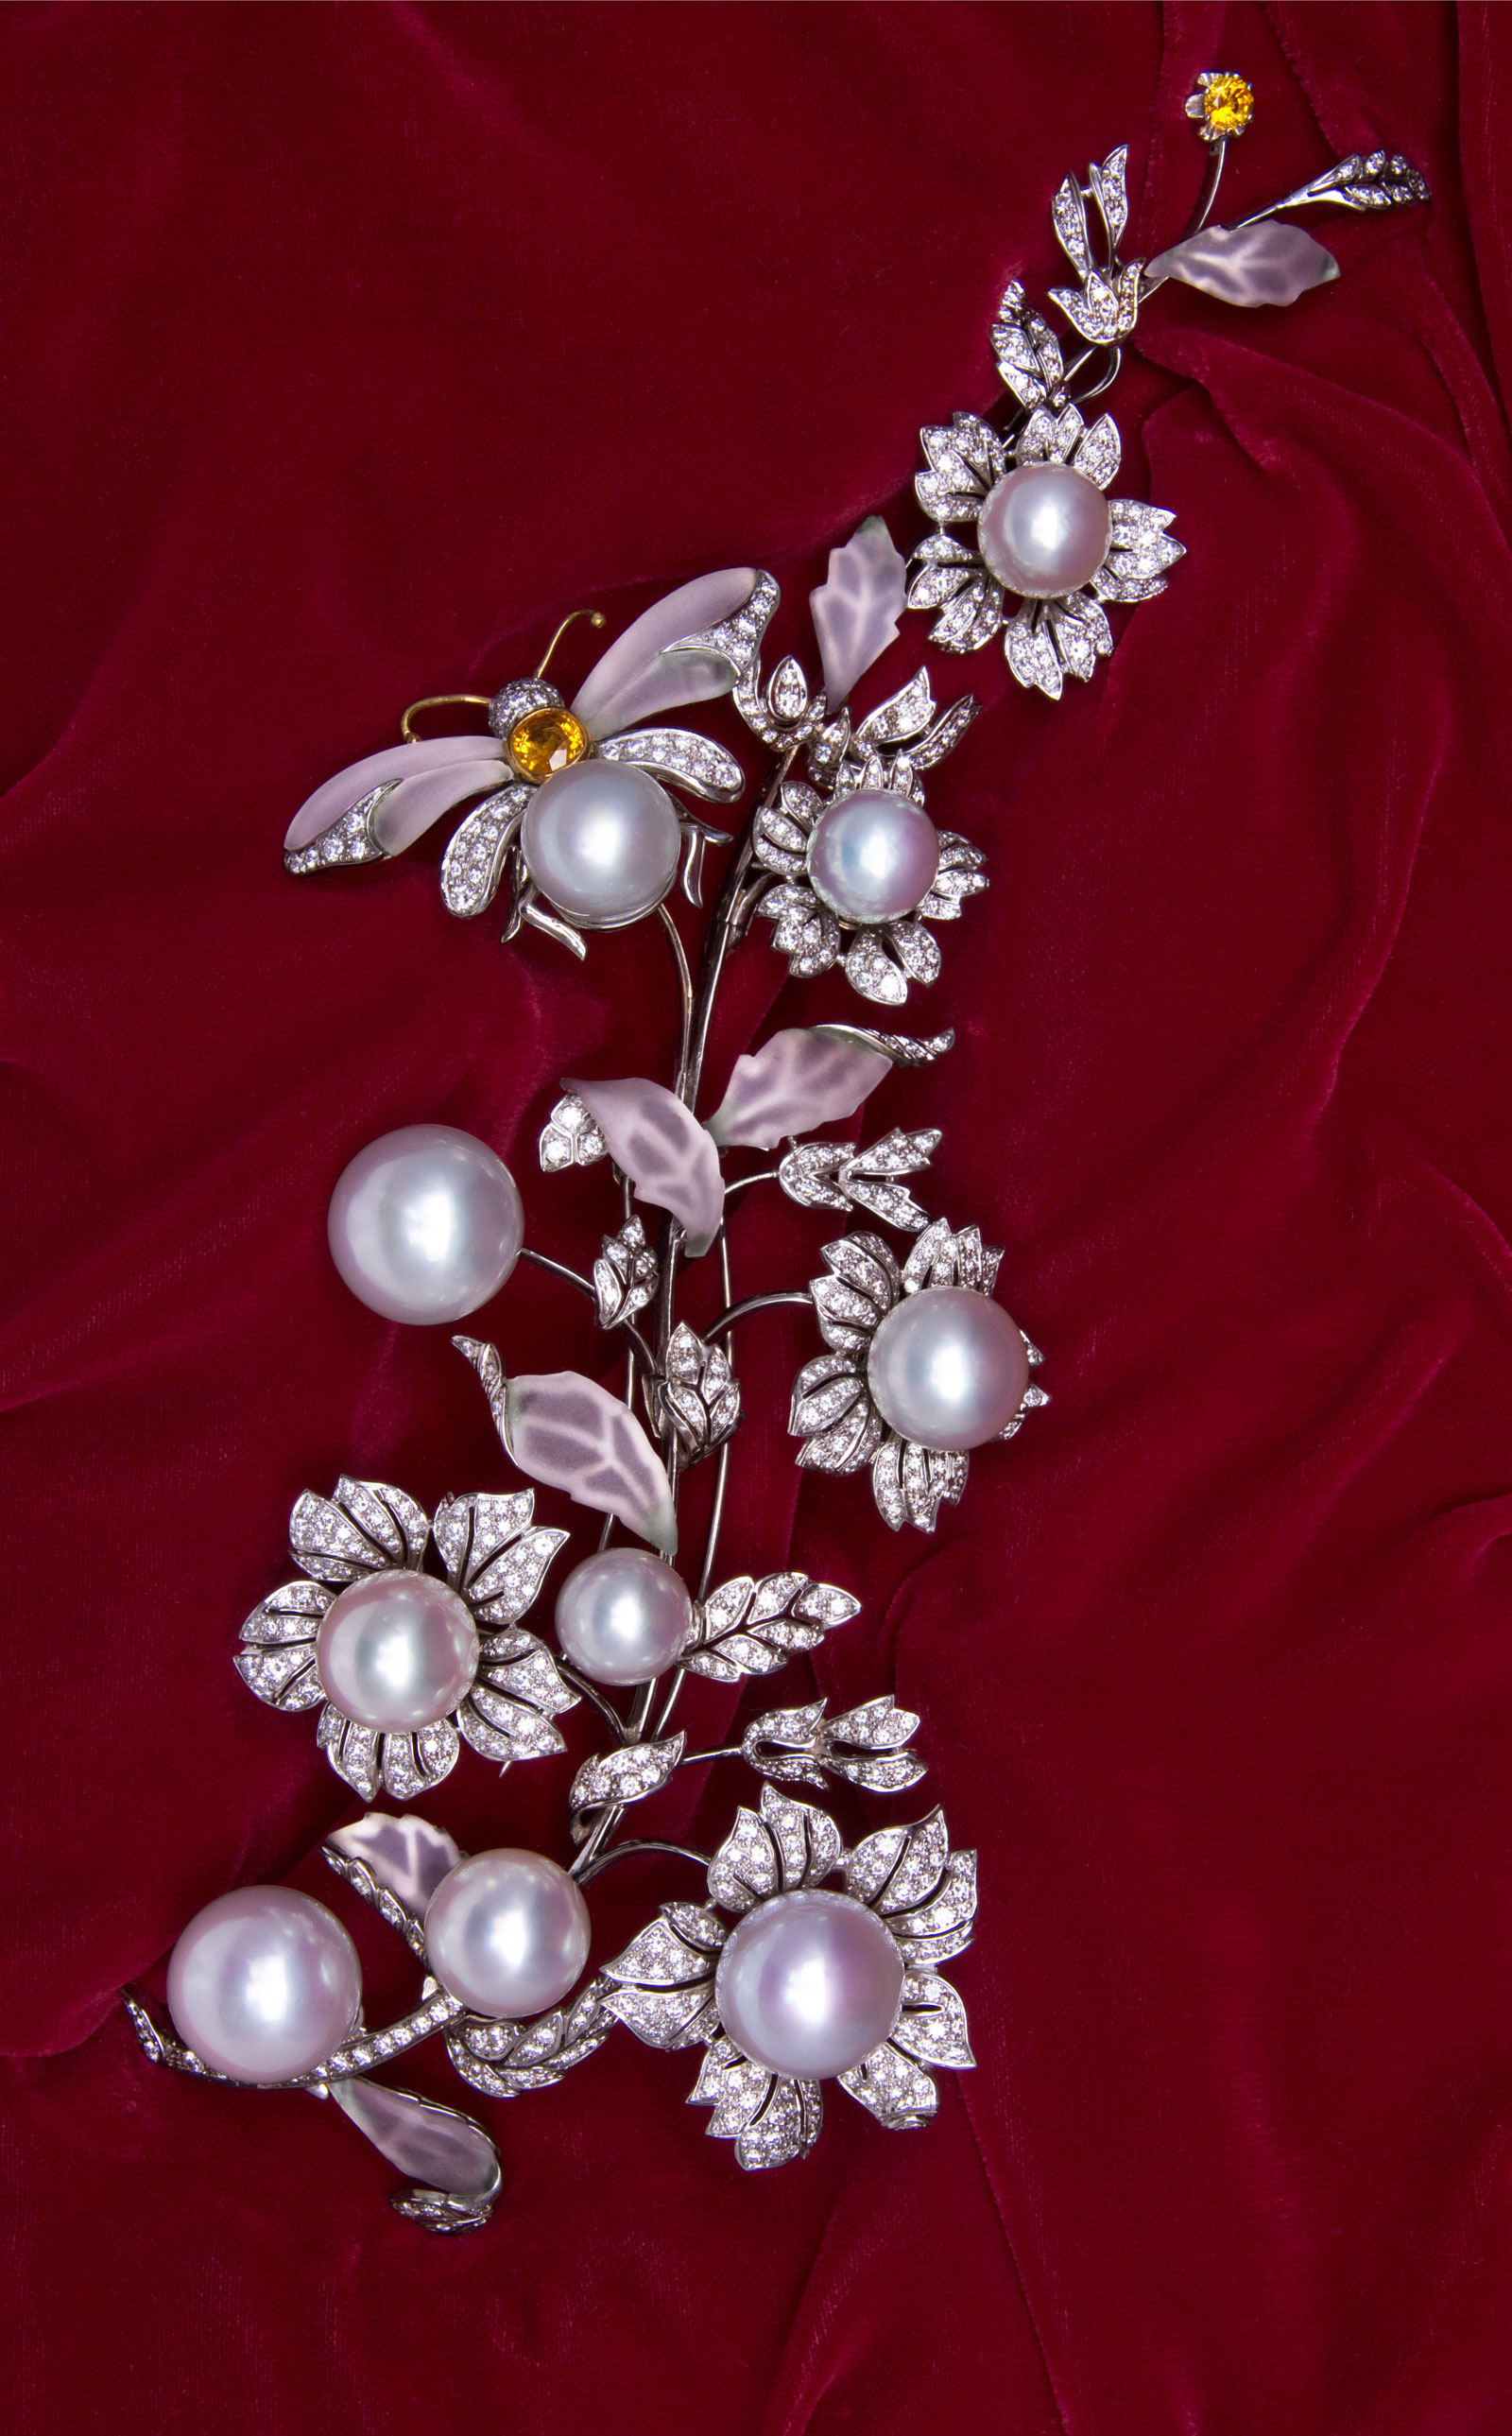 Corsage brooch with 18mm gem quality pearls, diamonds, frosted crystal, and yellow sapphires